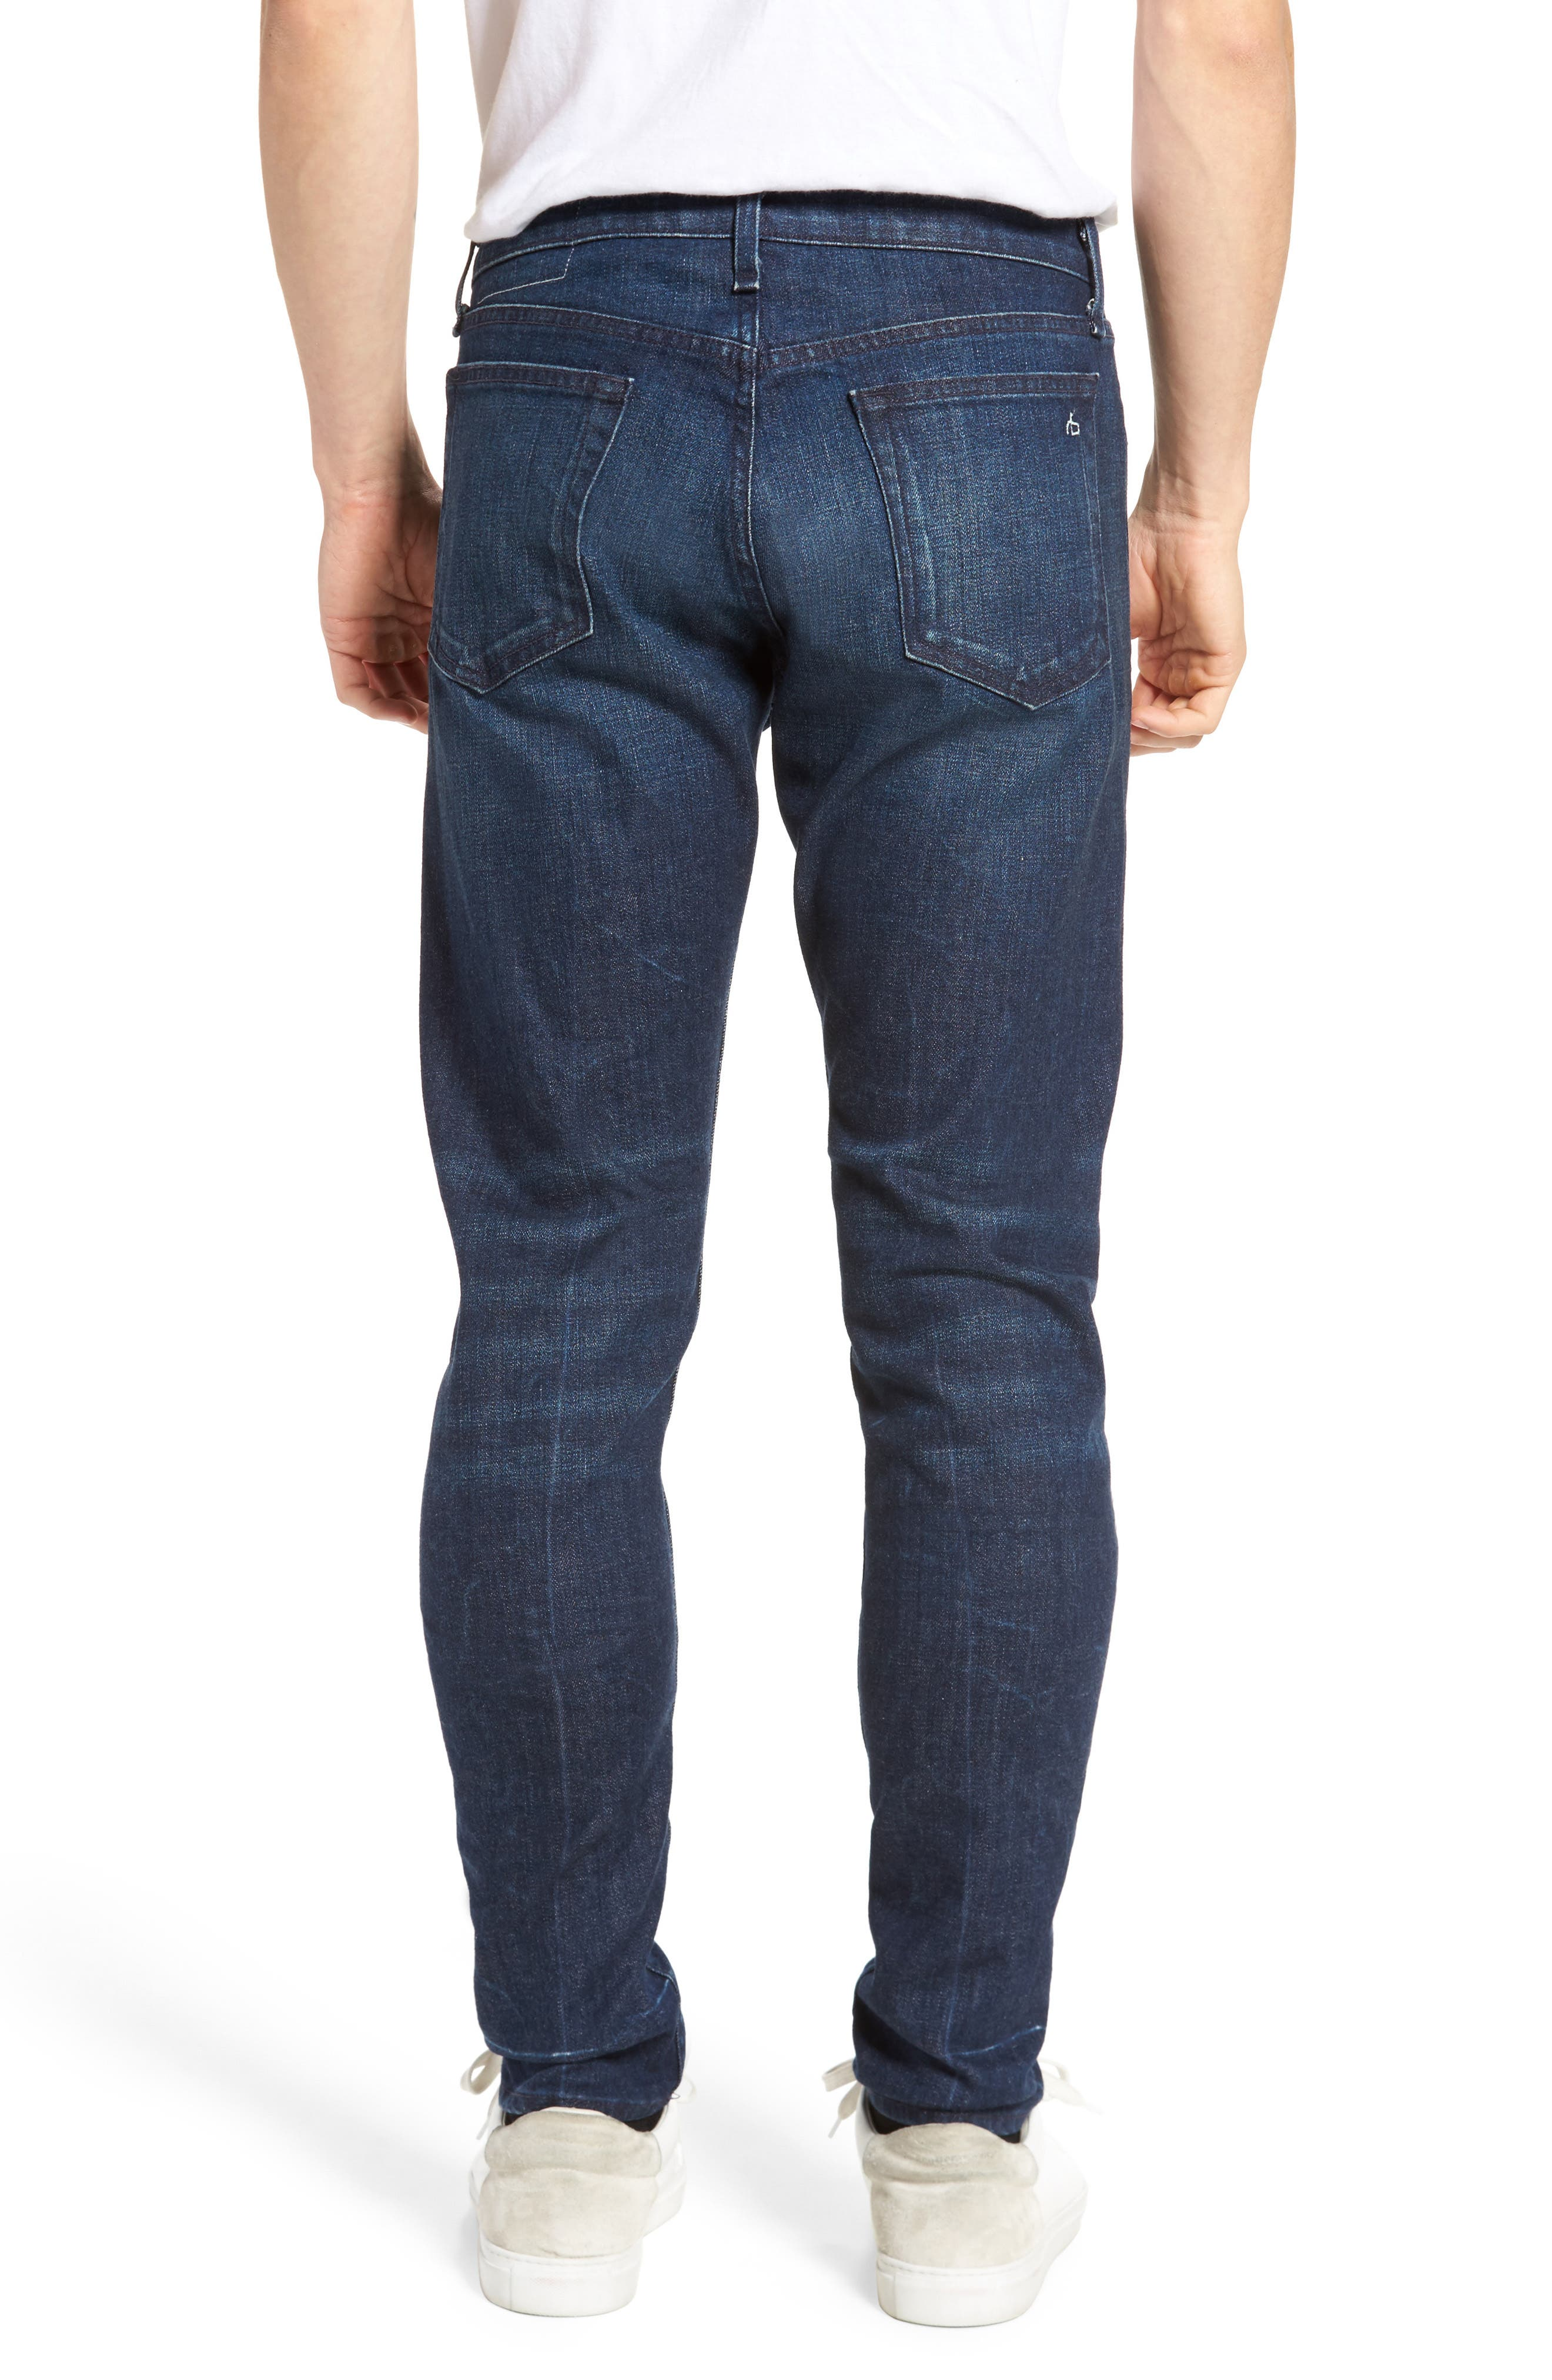 Fit 1 Skinny Fit Jeans,                             Alternate thumbnail 2, color,                             402